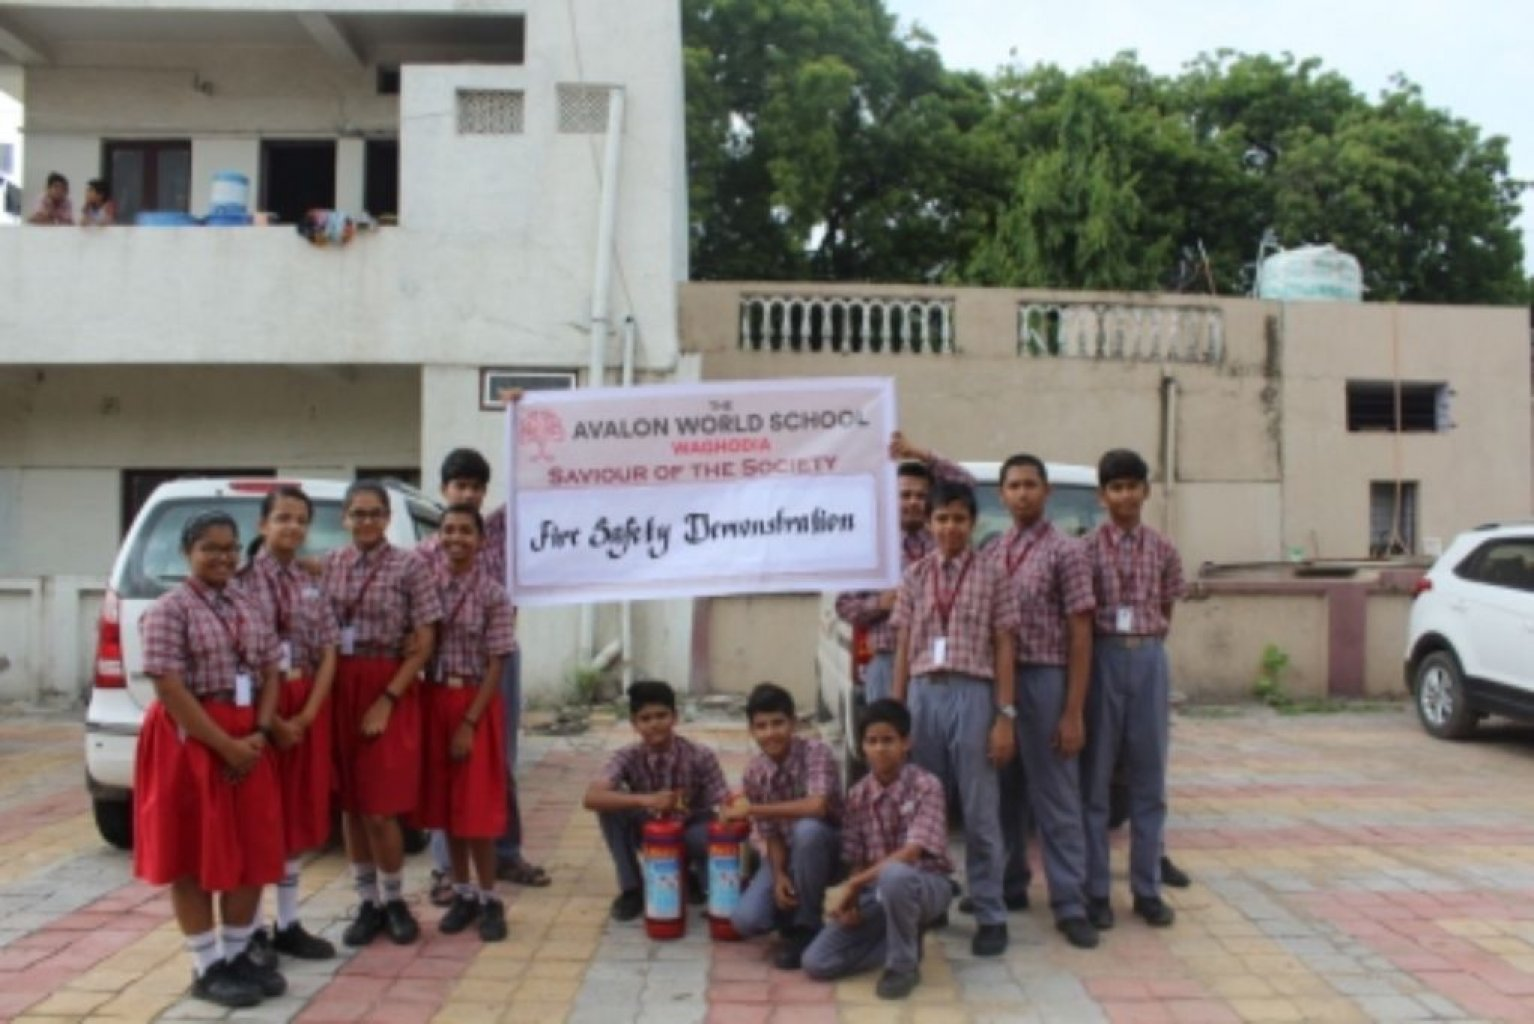 Fire Safety Demonstration At Shram Sadhna Society View Photos